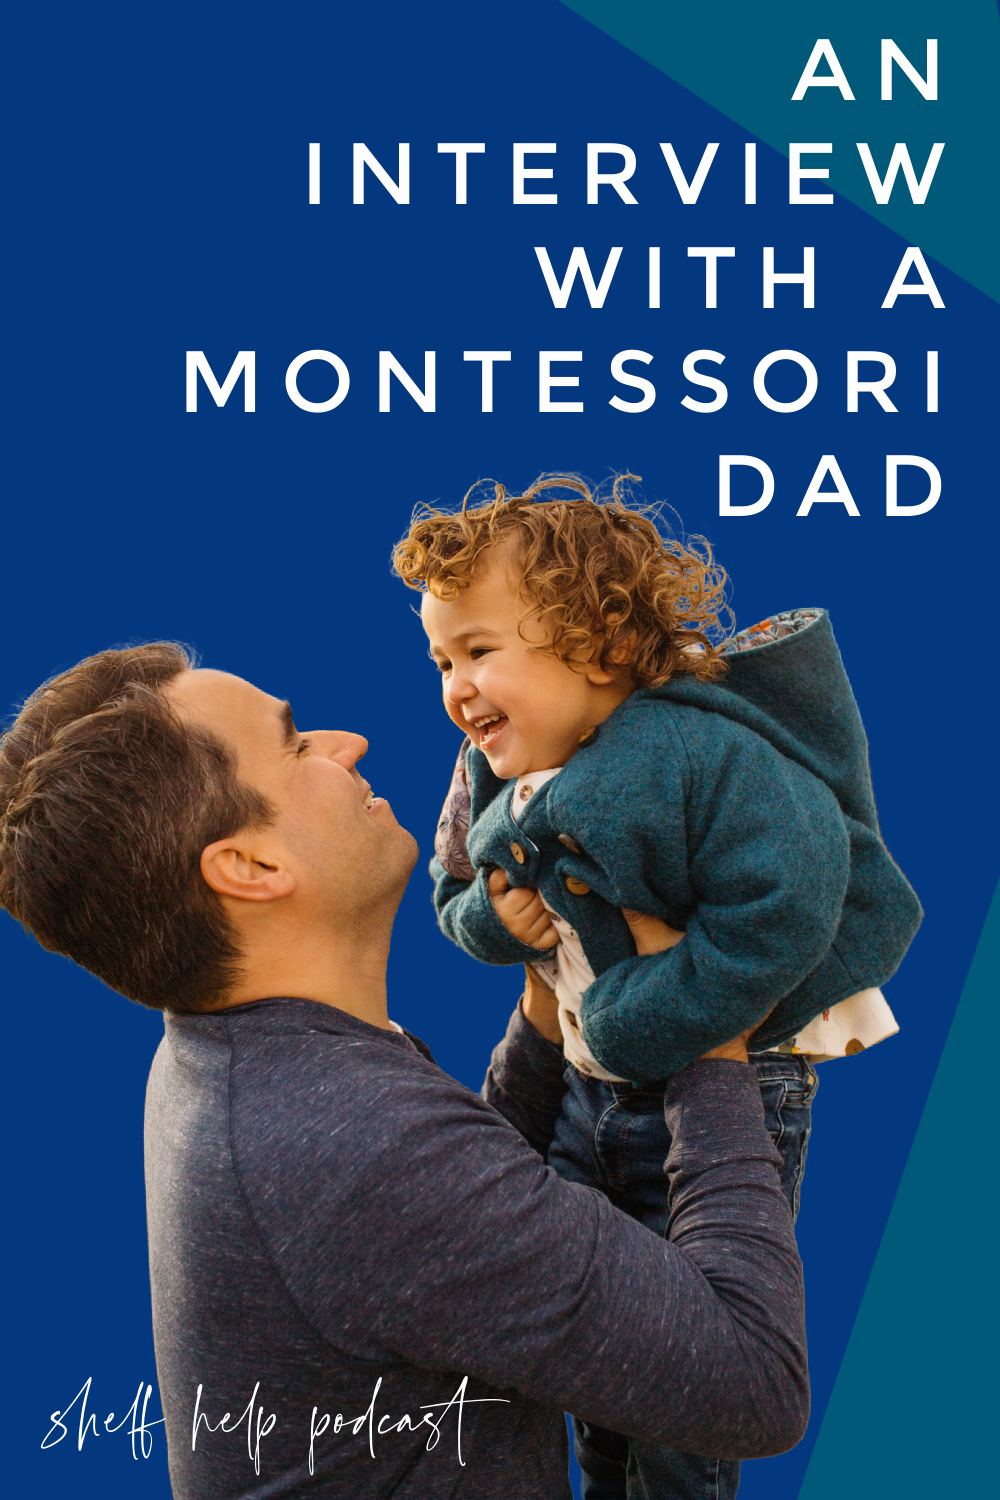 In this Montessori parenting podcast, we talk to a Montessori dad for his perspective on using Montessori at home including the challenges of using it